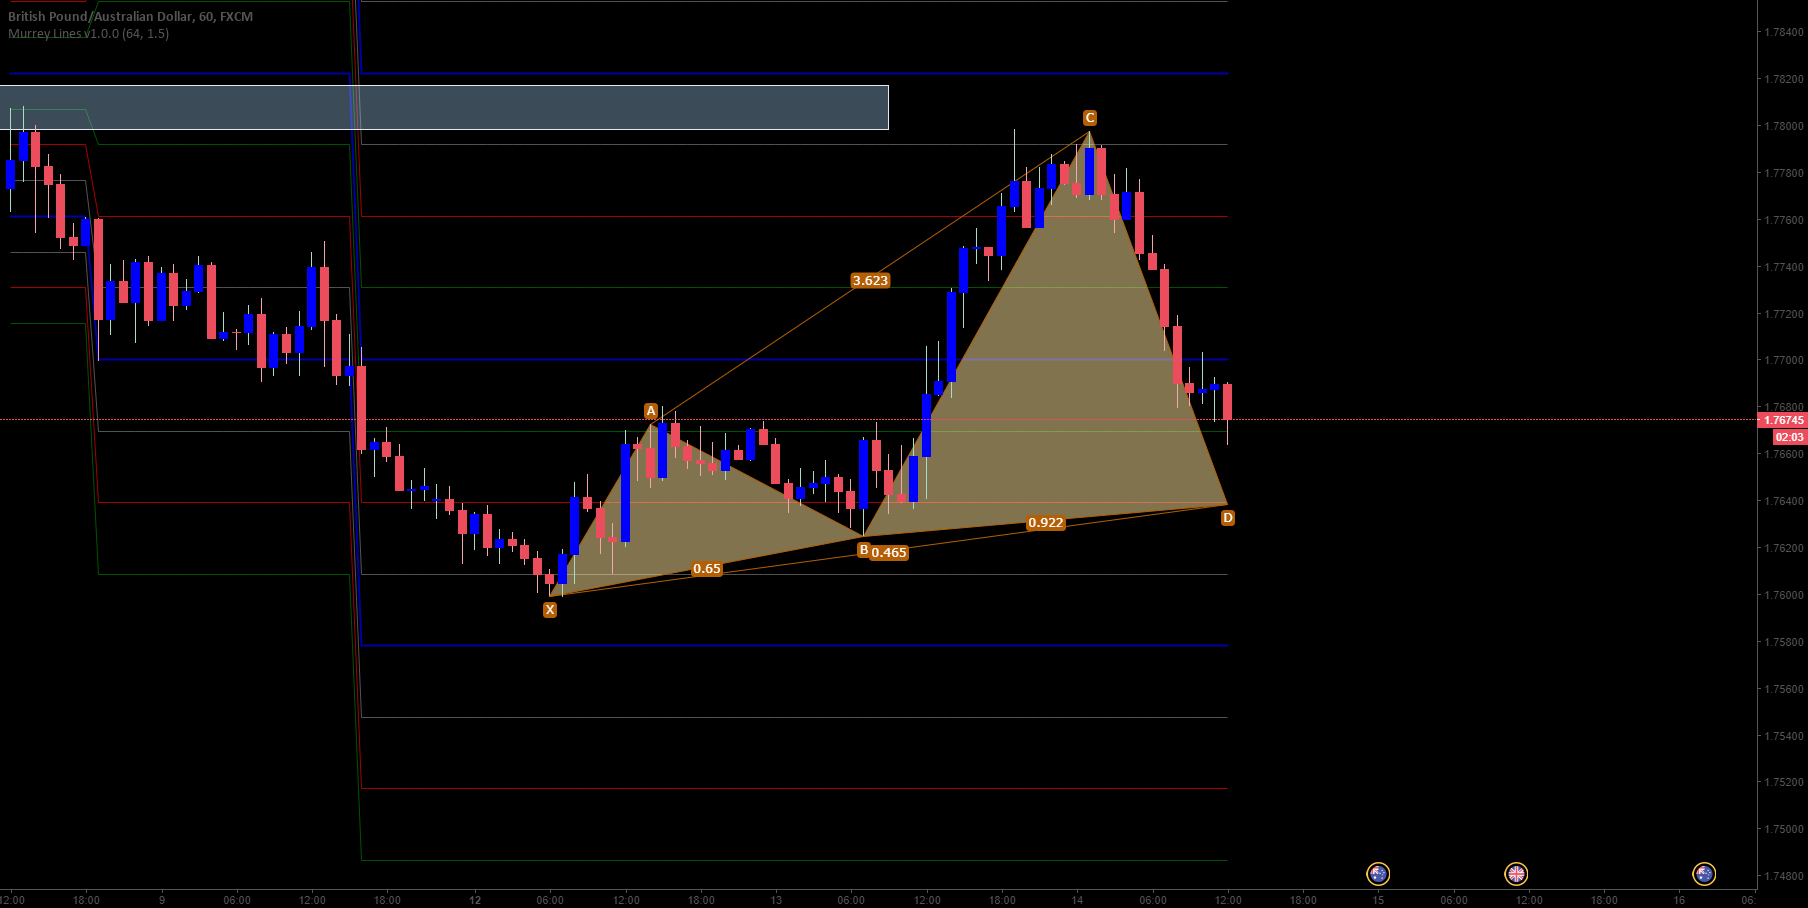 GBPAUD Bullish Black Swan and Long Opportunity